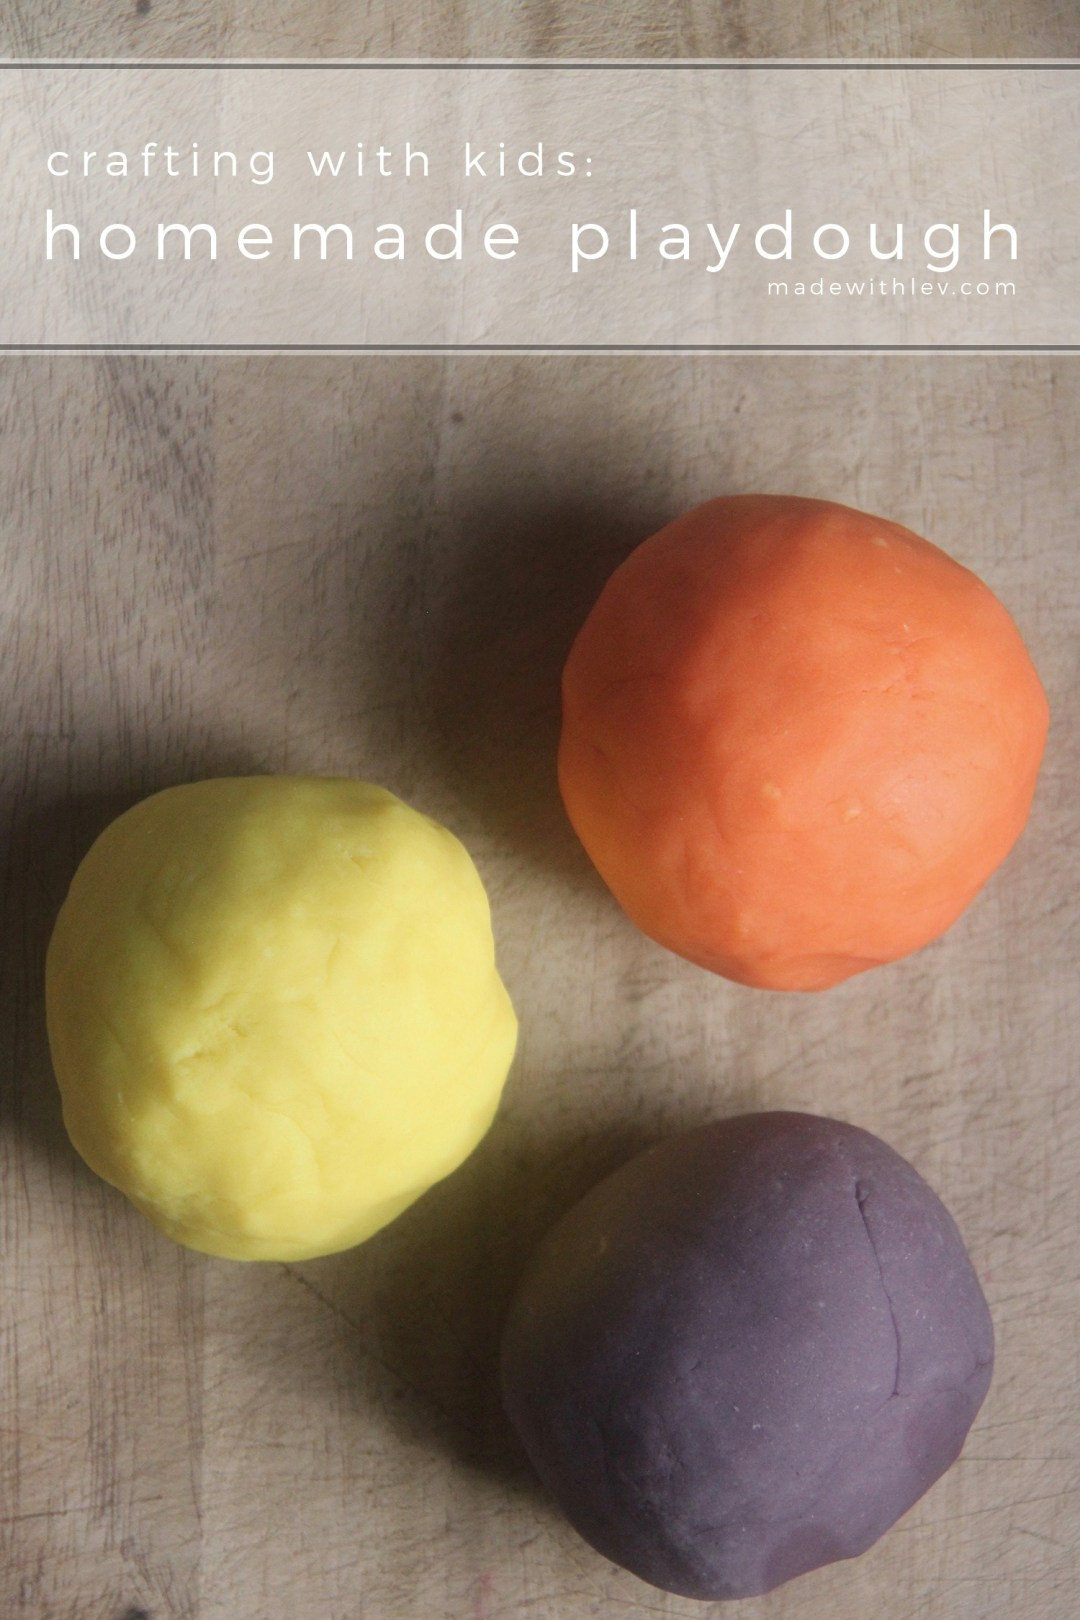 Crafting with kids: homemade playdough. So good, you'll never go back to the store bough variety. #craftingwithkids #kidscraft #homemadeplaydough #playdough #diycraft #familycraft #toddleractivities